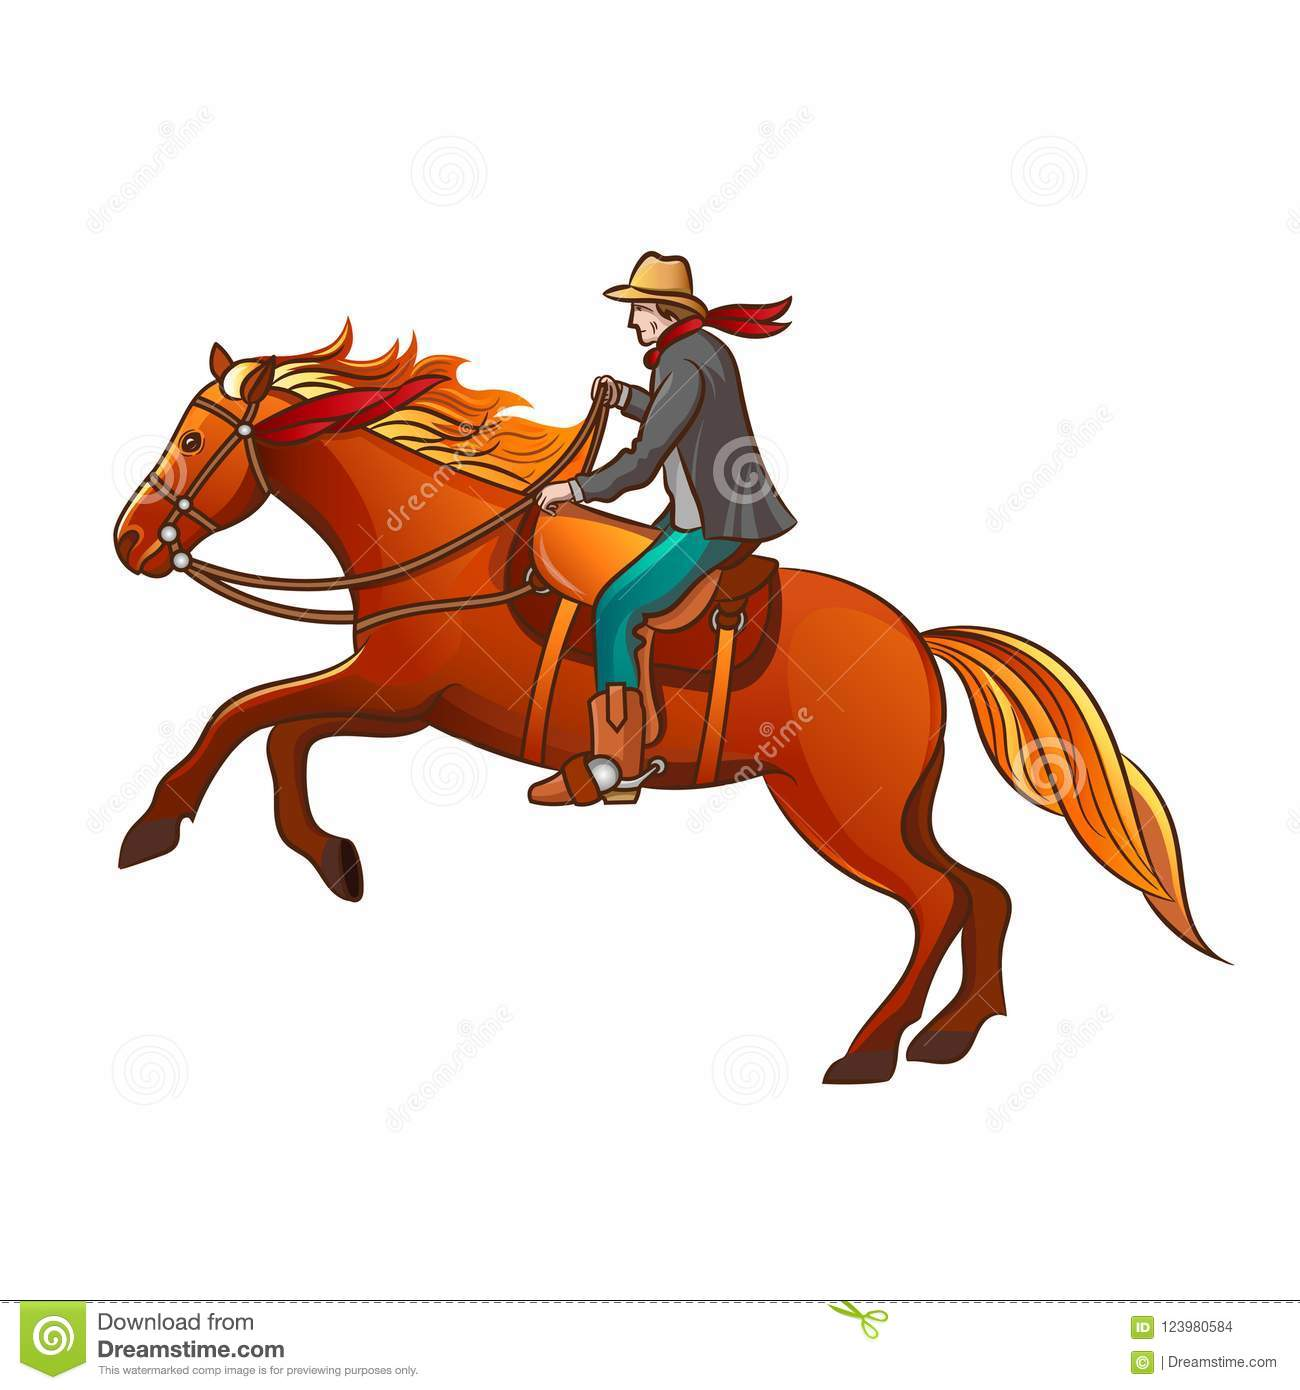 Set of elements of the Wild West. The equipment of cowboys. Cowboy on horse.